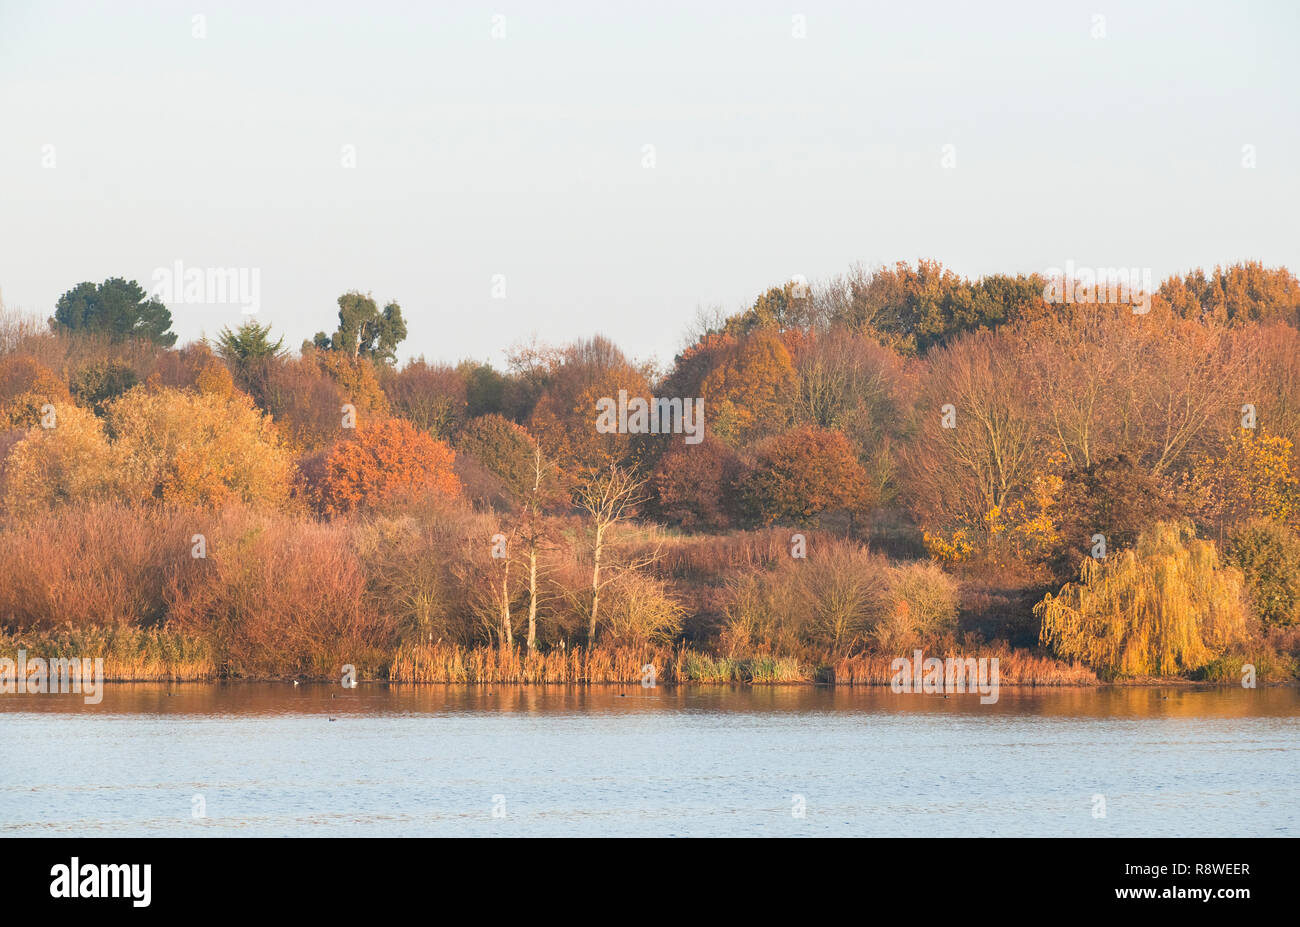 autumn trees beside Brent Reservoir, also known as Welsh Harp Reservoir, SSSI reserve, Brent, London, United Kingdom Stock Photo